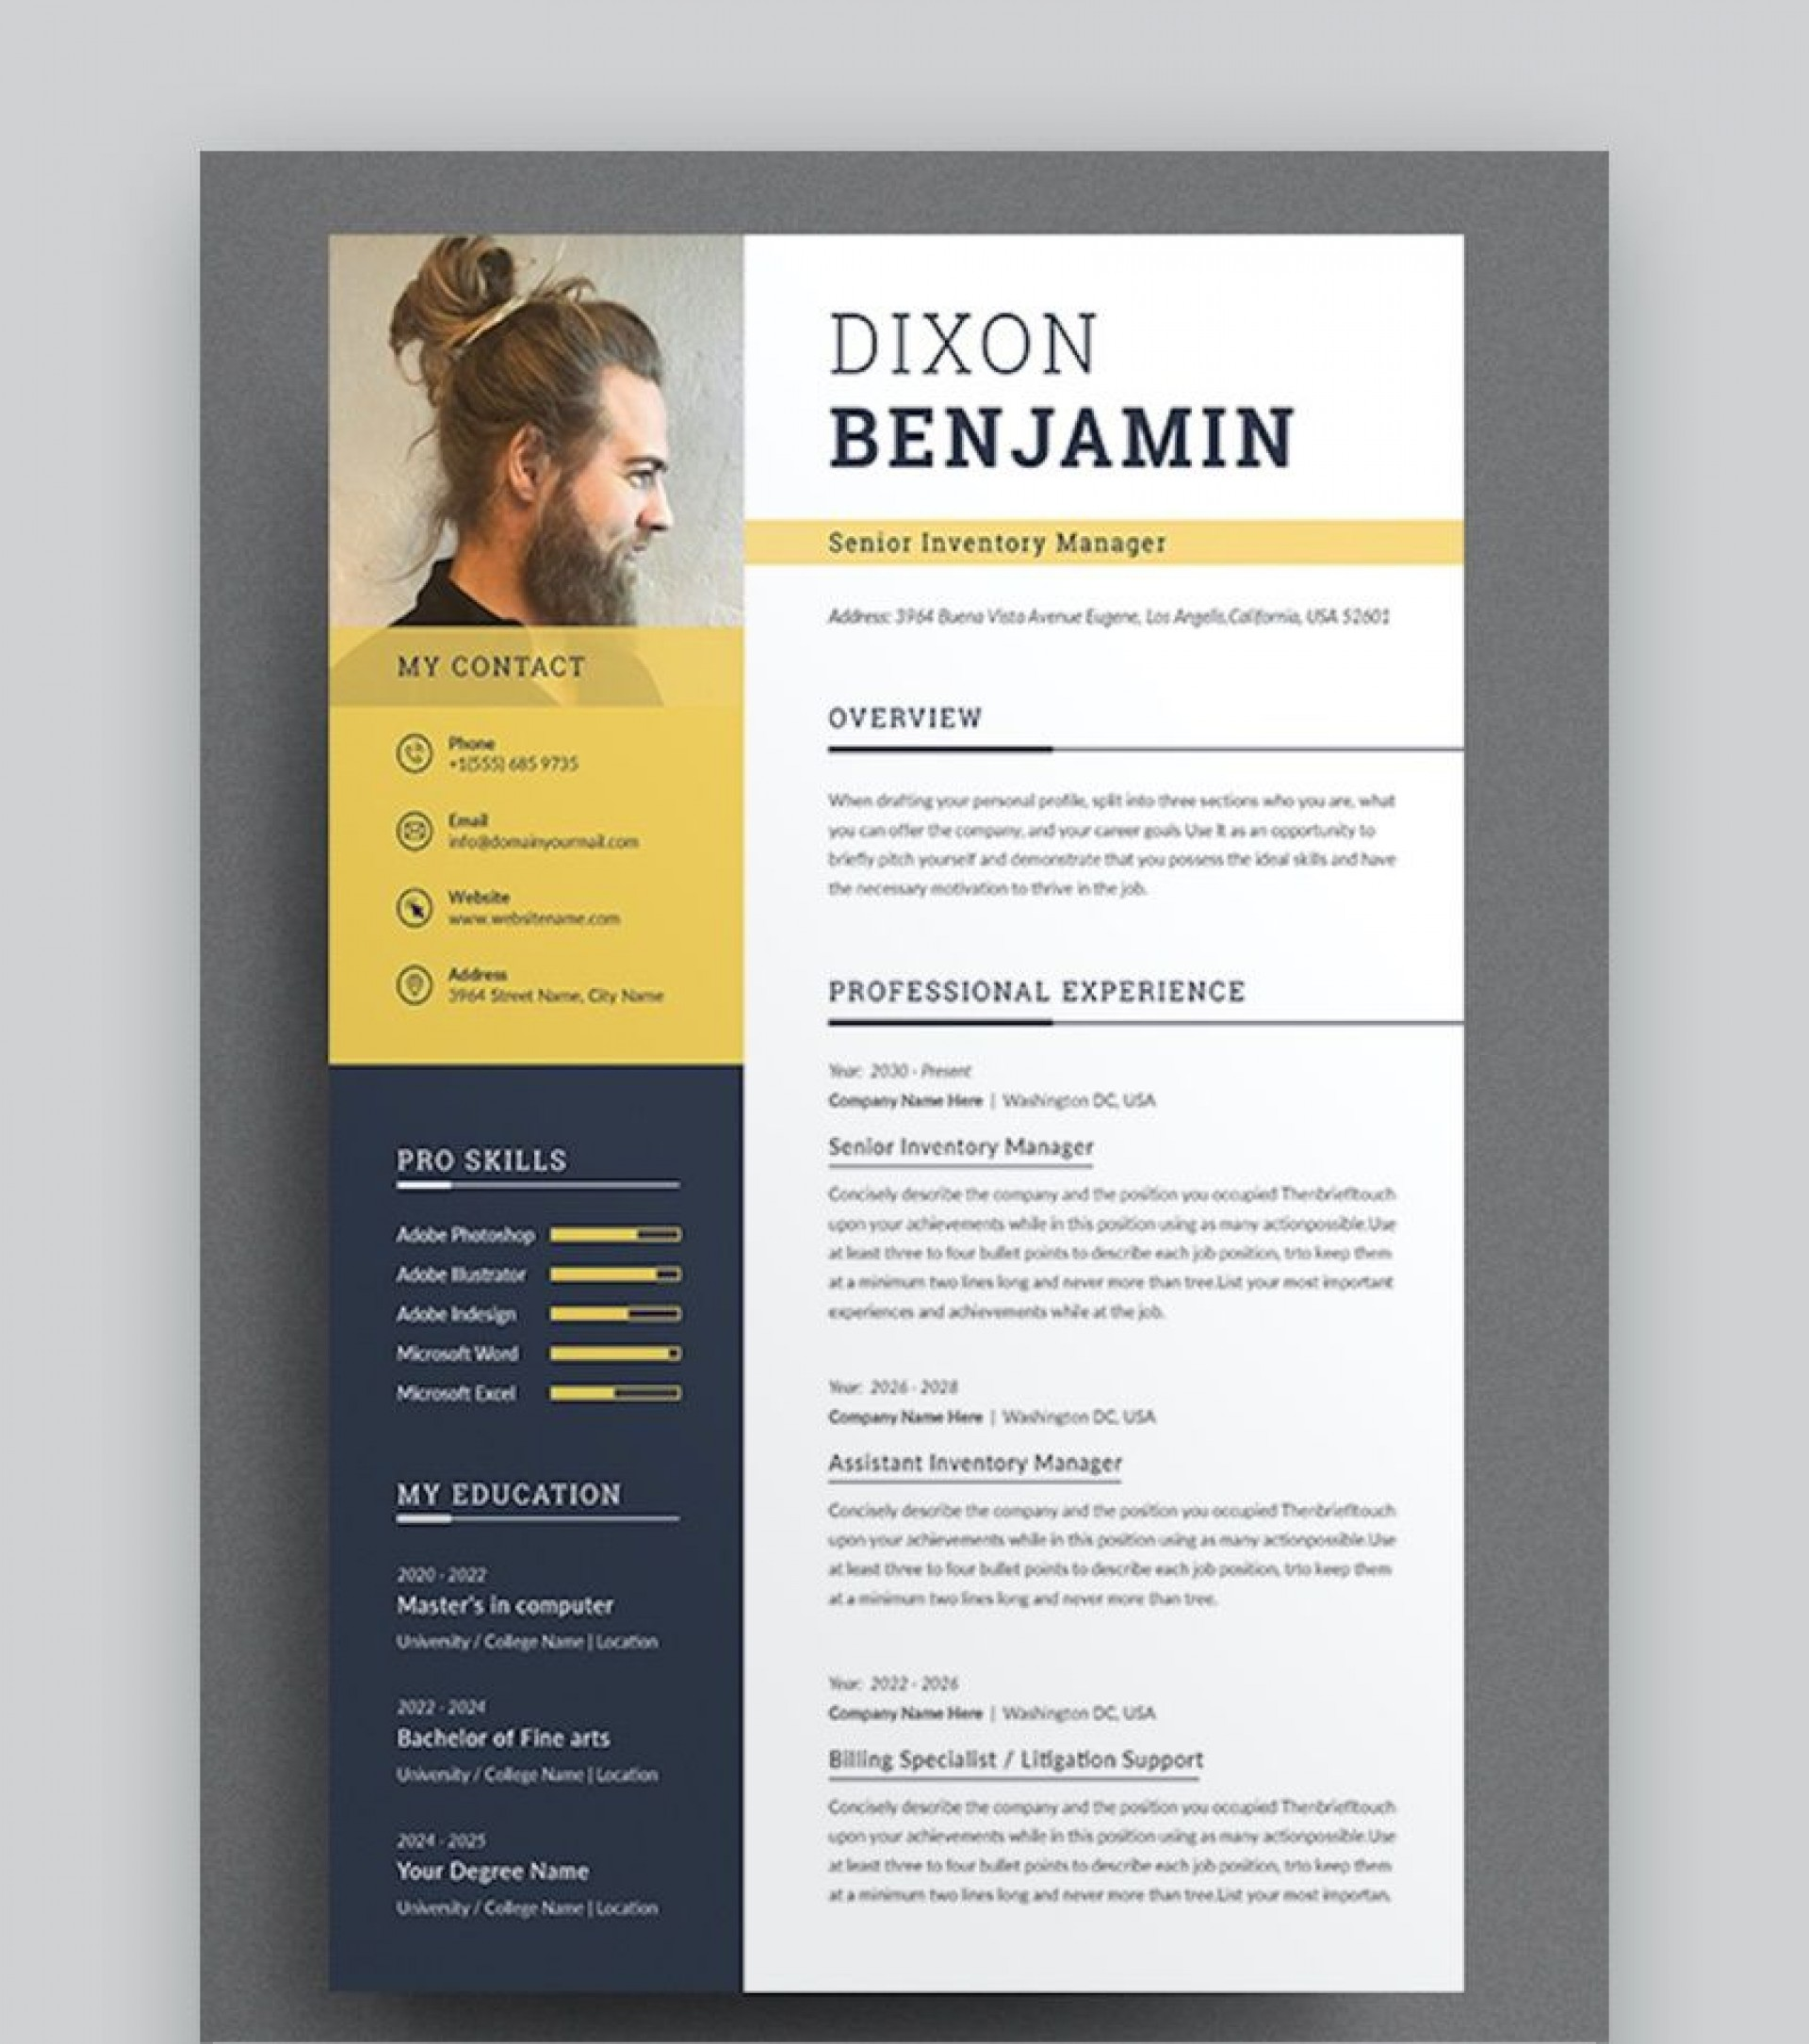 007 Formidable Example Cv Template Word Highest Quality  Resume Microsoft1920